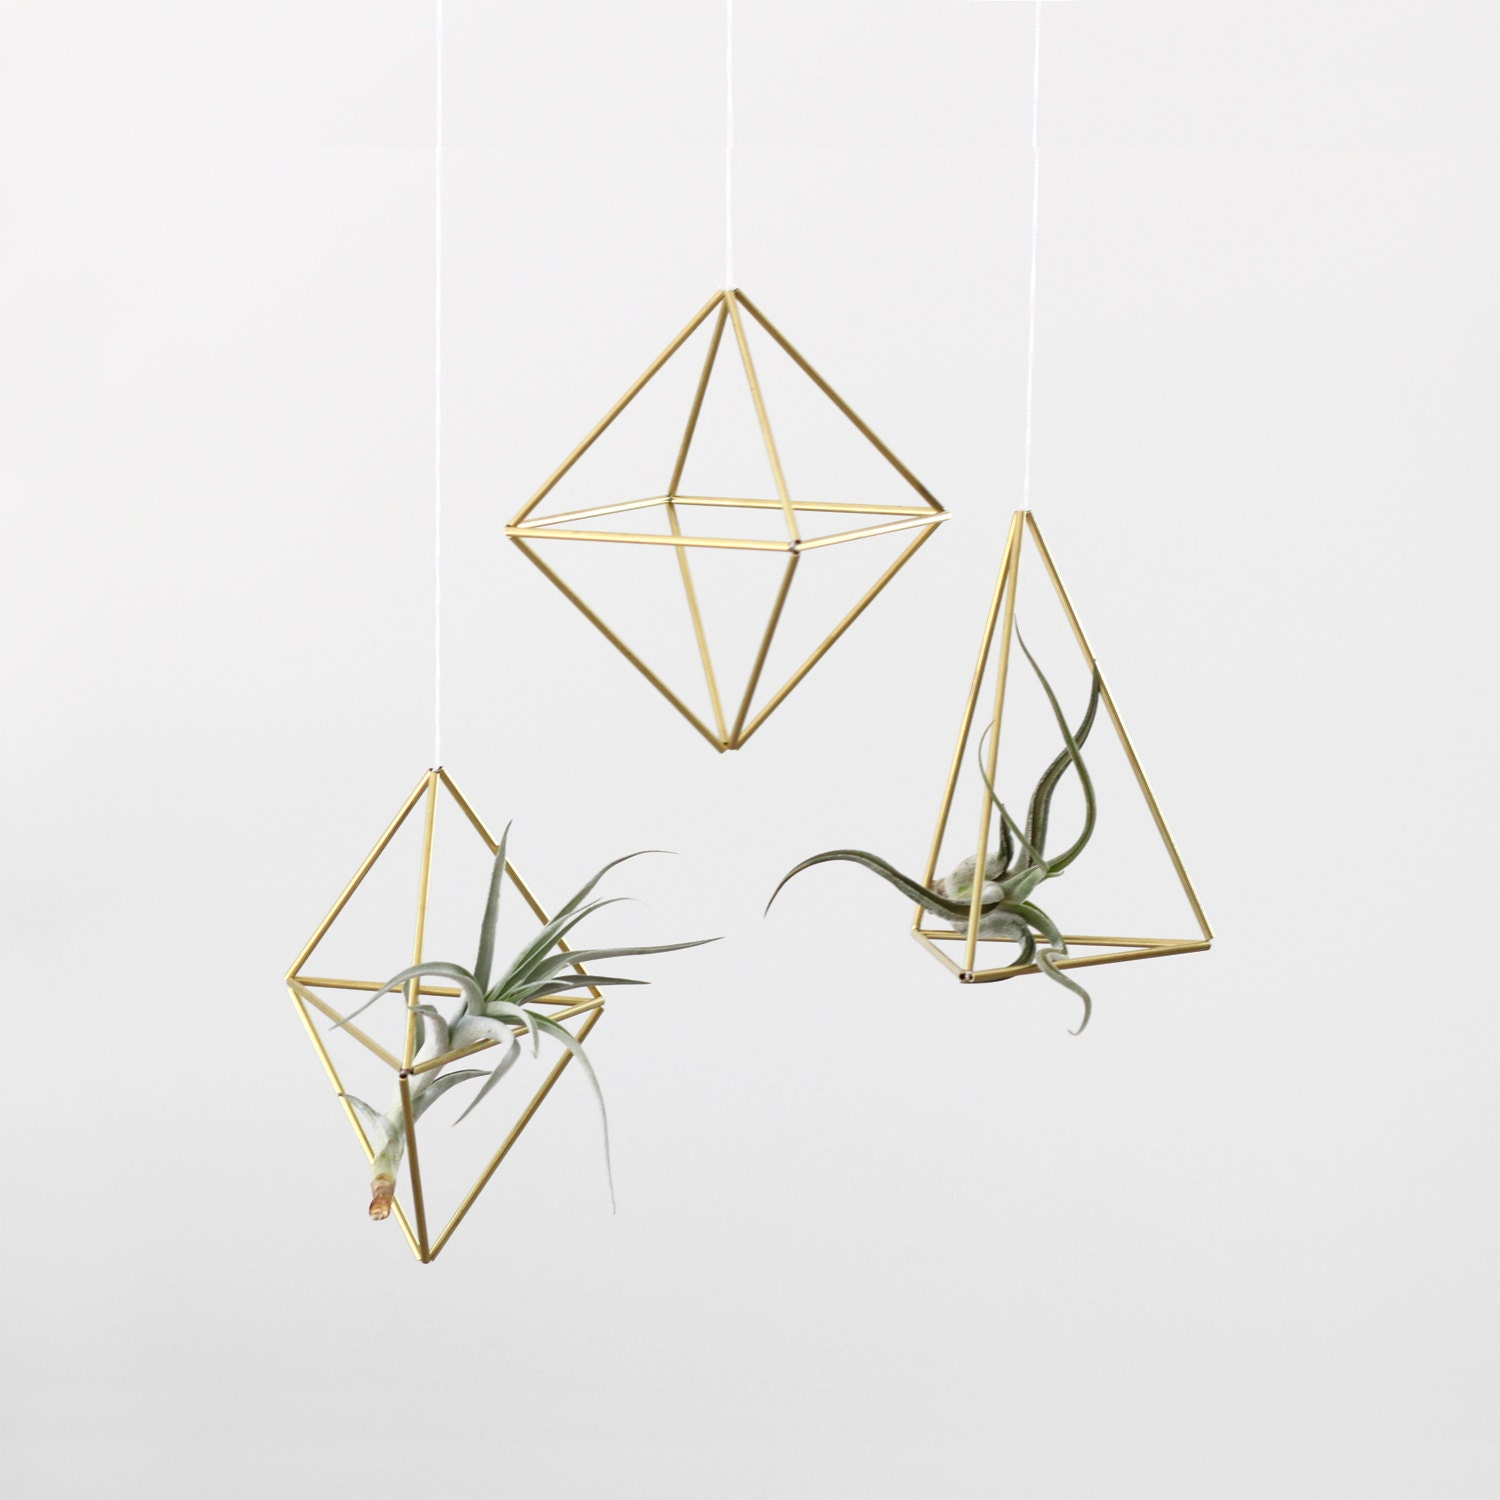 set of 3 brass himmeli air plant holders hanging mobile